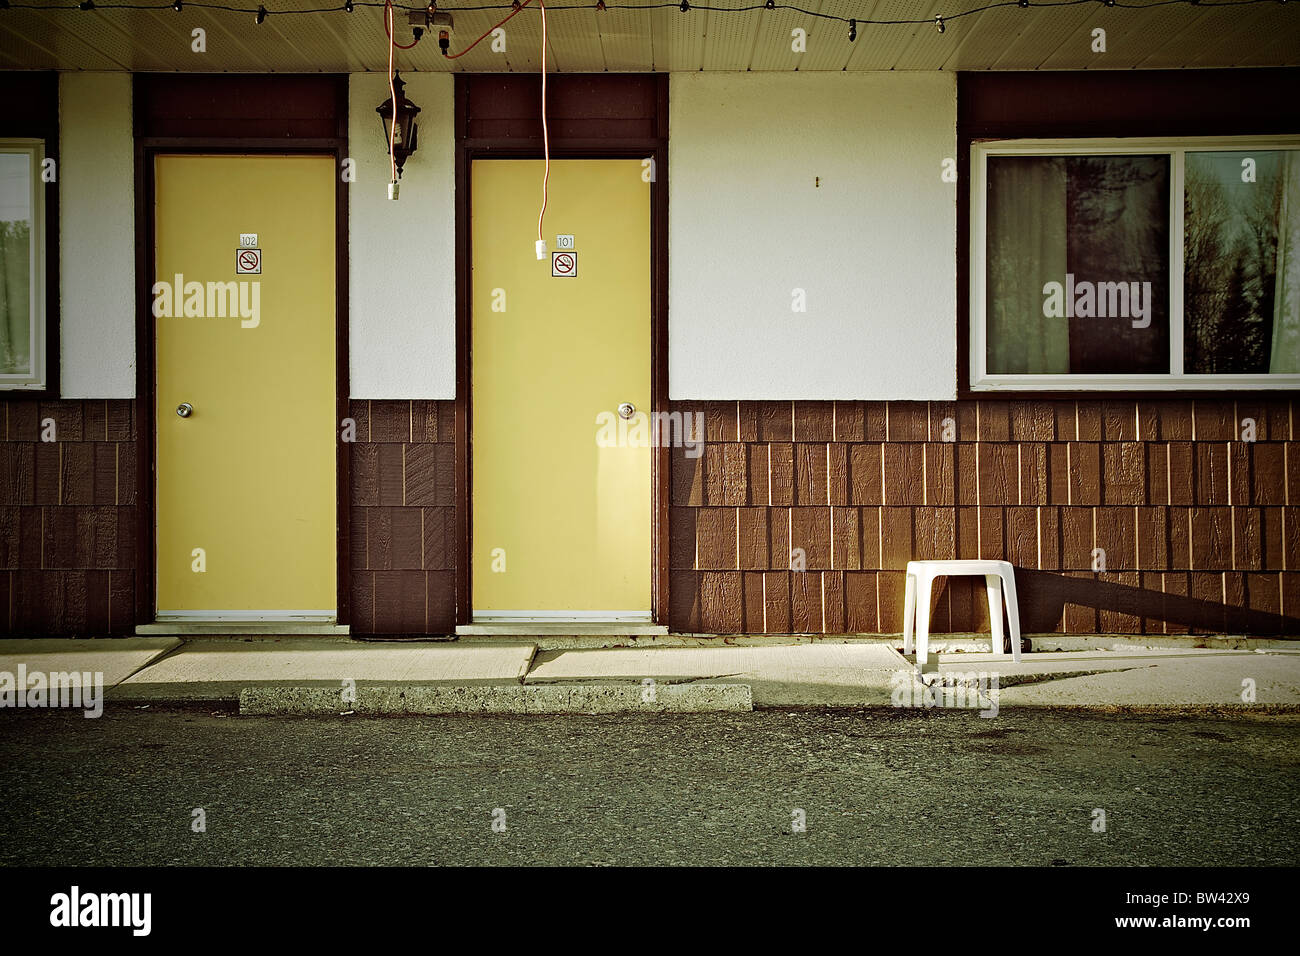 Vintage motel with yellow doors and dangling christmas lights Dryden Ontario Canada - & Motel Door Stock Photos \u0026 Motel Door Stock Images - Alamy